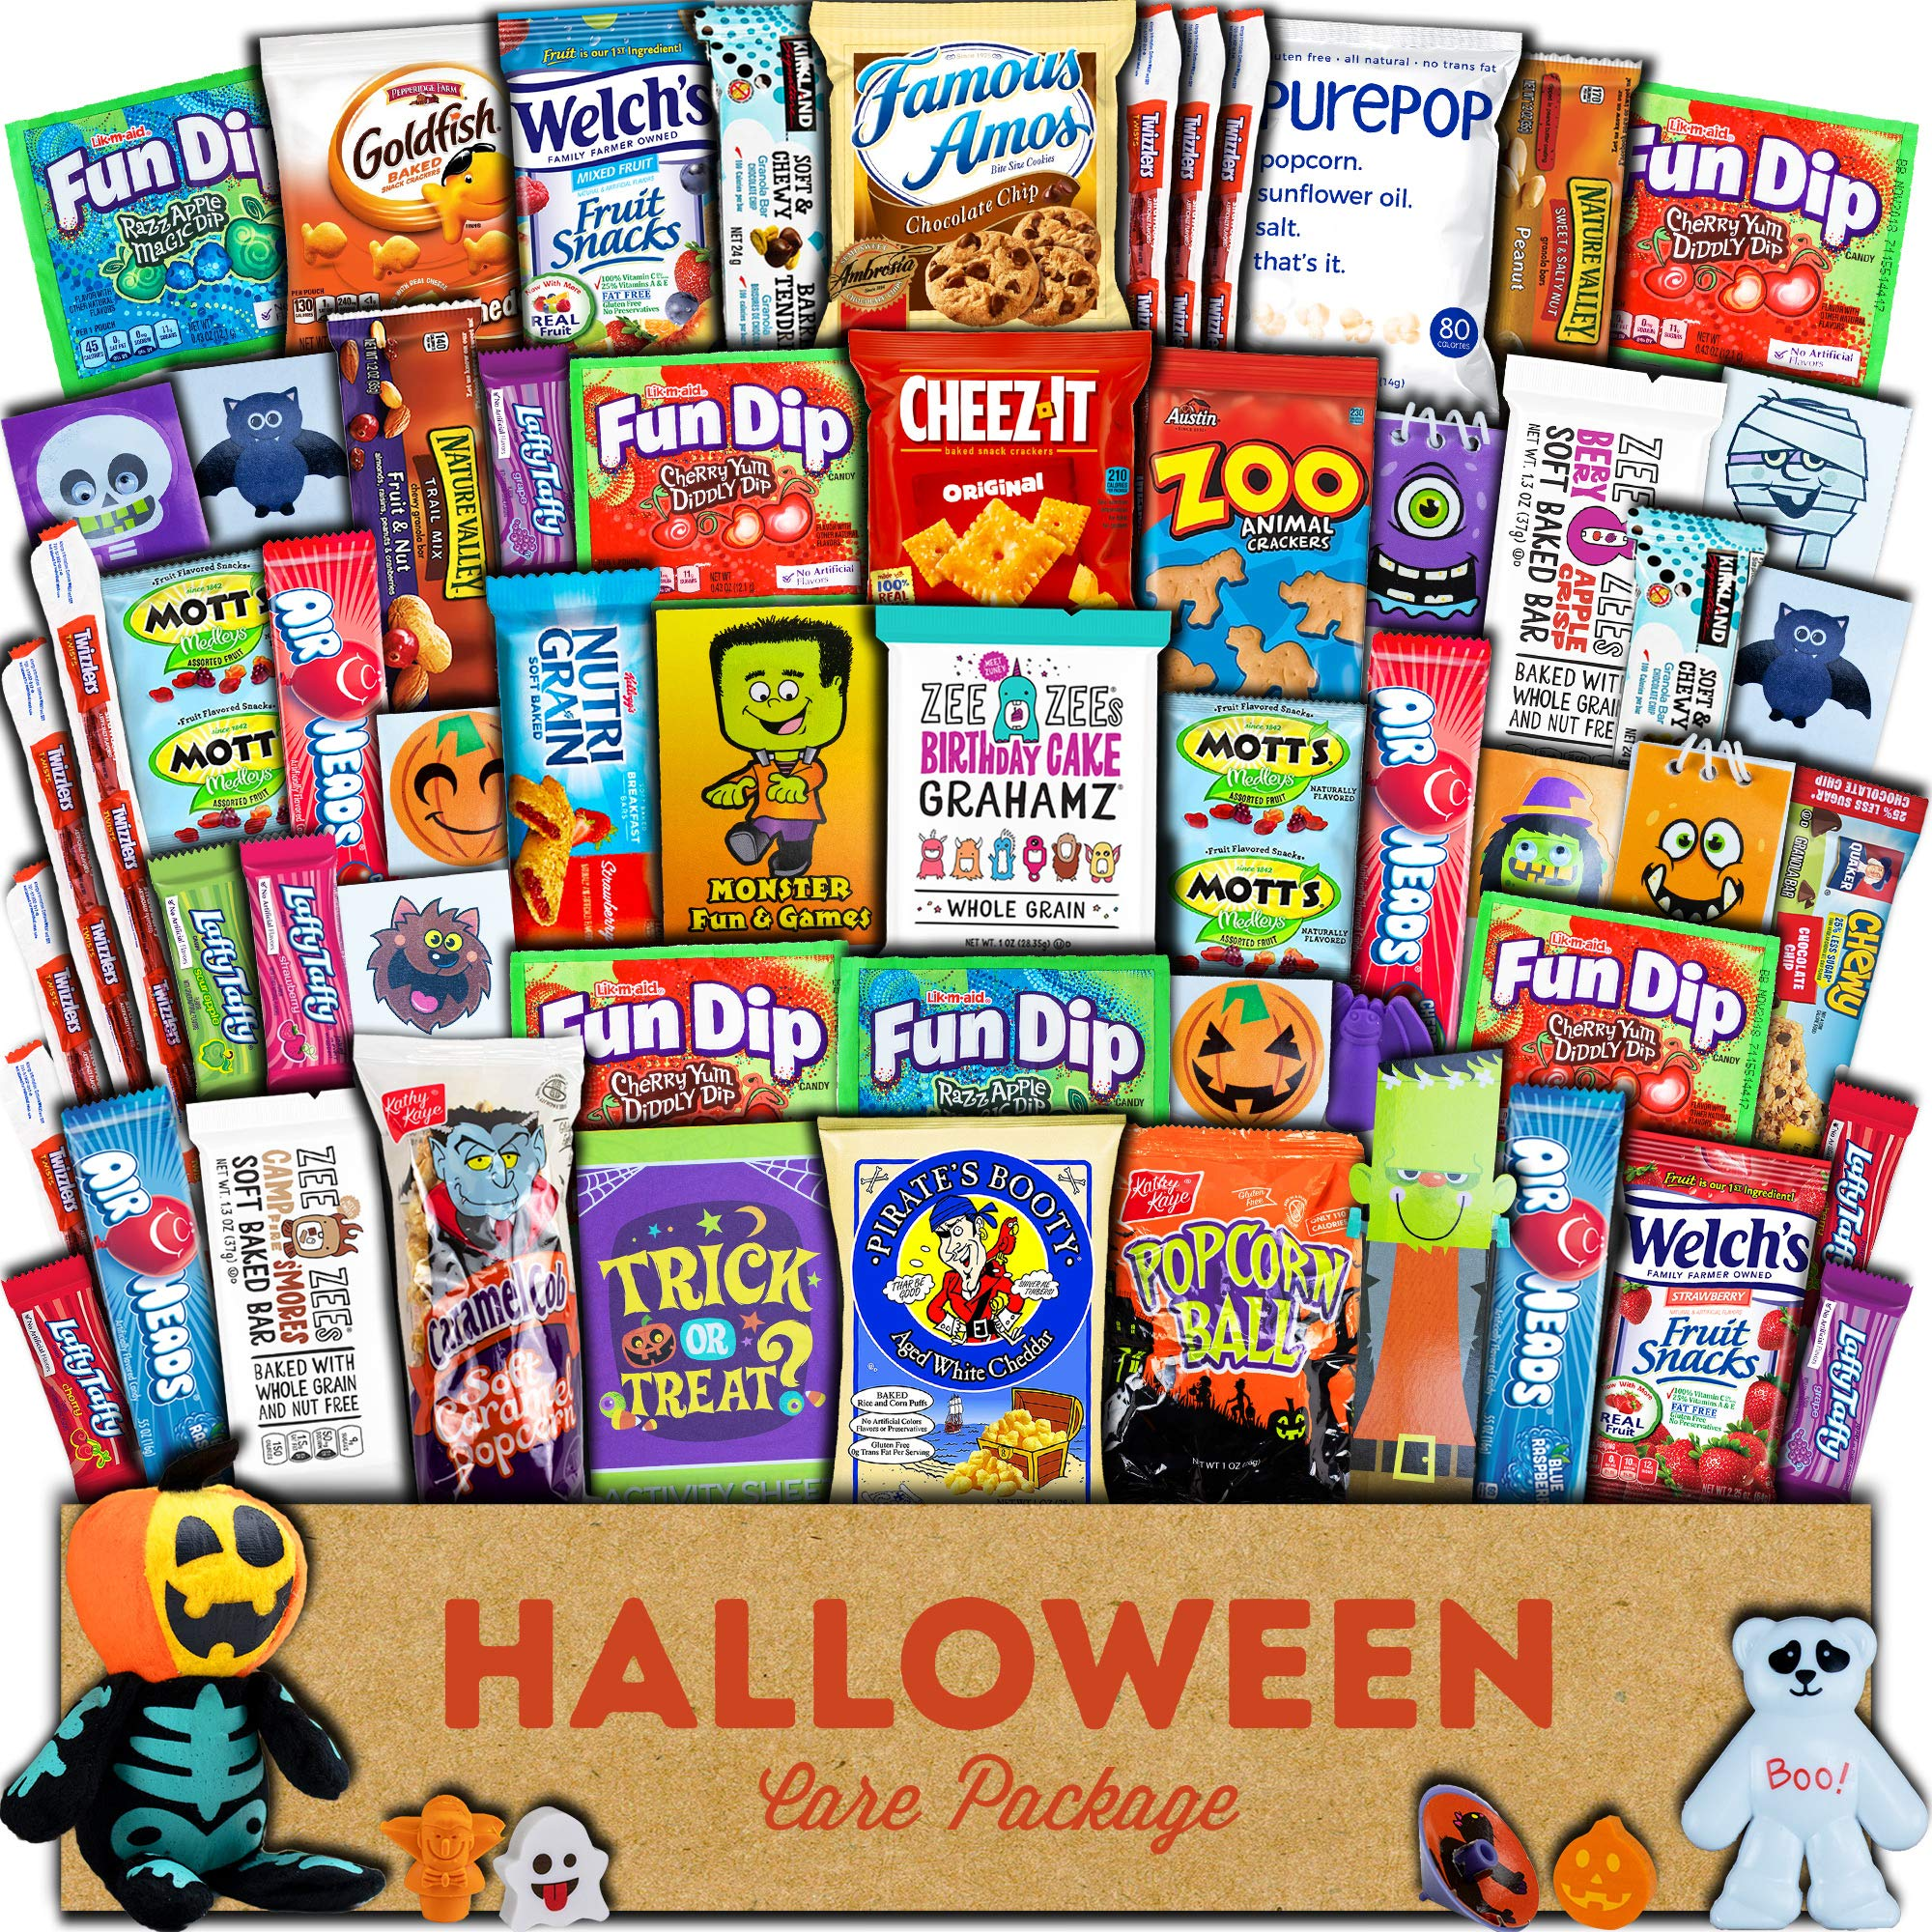 CDM product Halloween Care Package (60ct) Trick or Treat Snacks Cookies Bars Chips Candy Toys Variety Gift Box Pack Assortment Basket Bundle Mixed Bulk Sampler Treats College Students Office big image